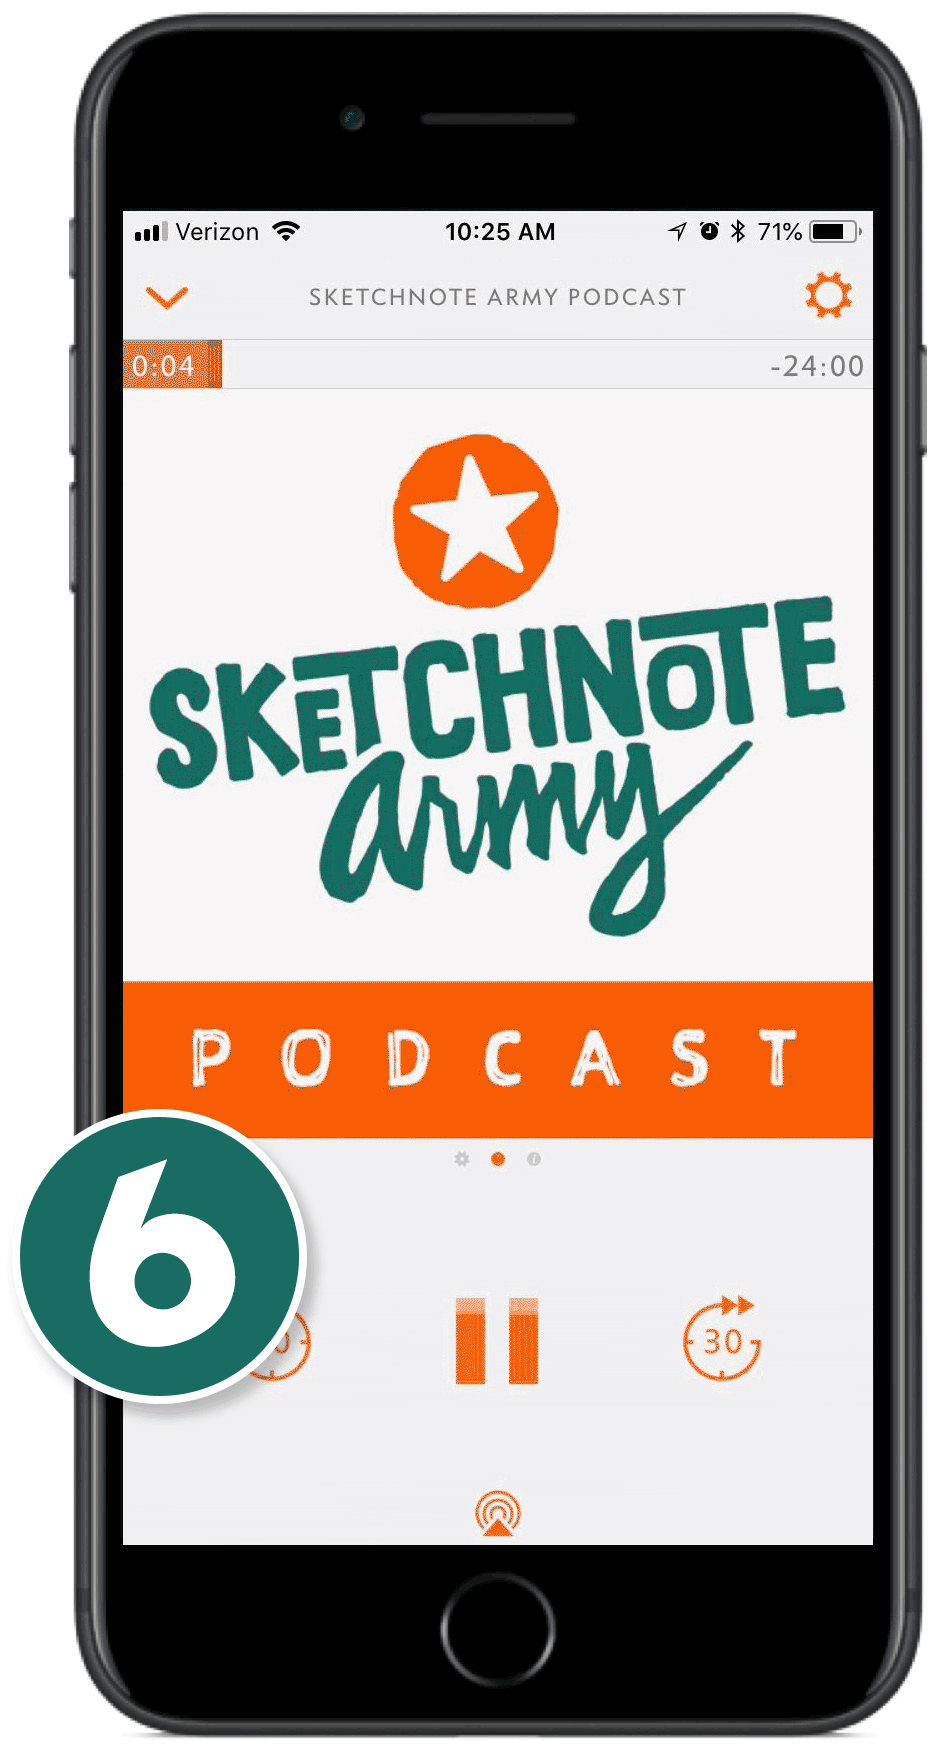 Sketchnote-Army-Podcast-Mobile-6.png